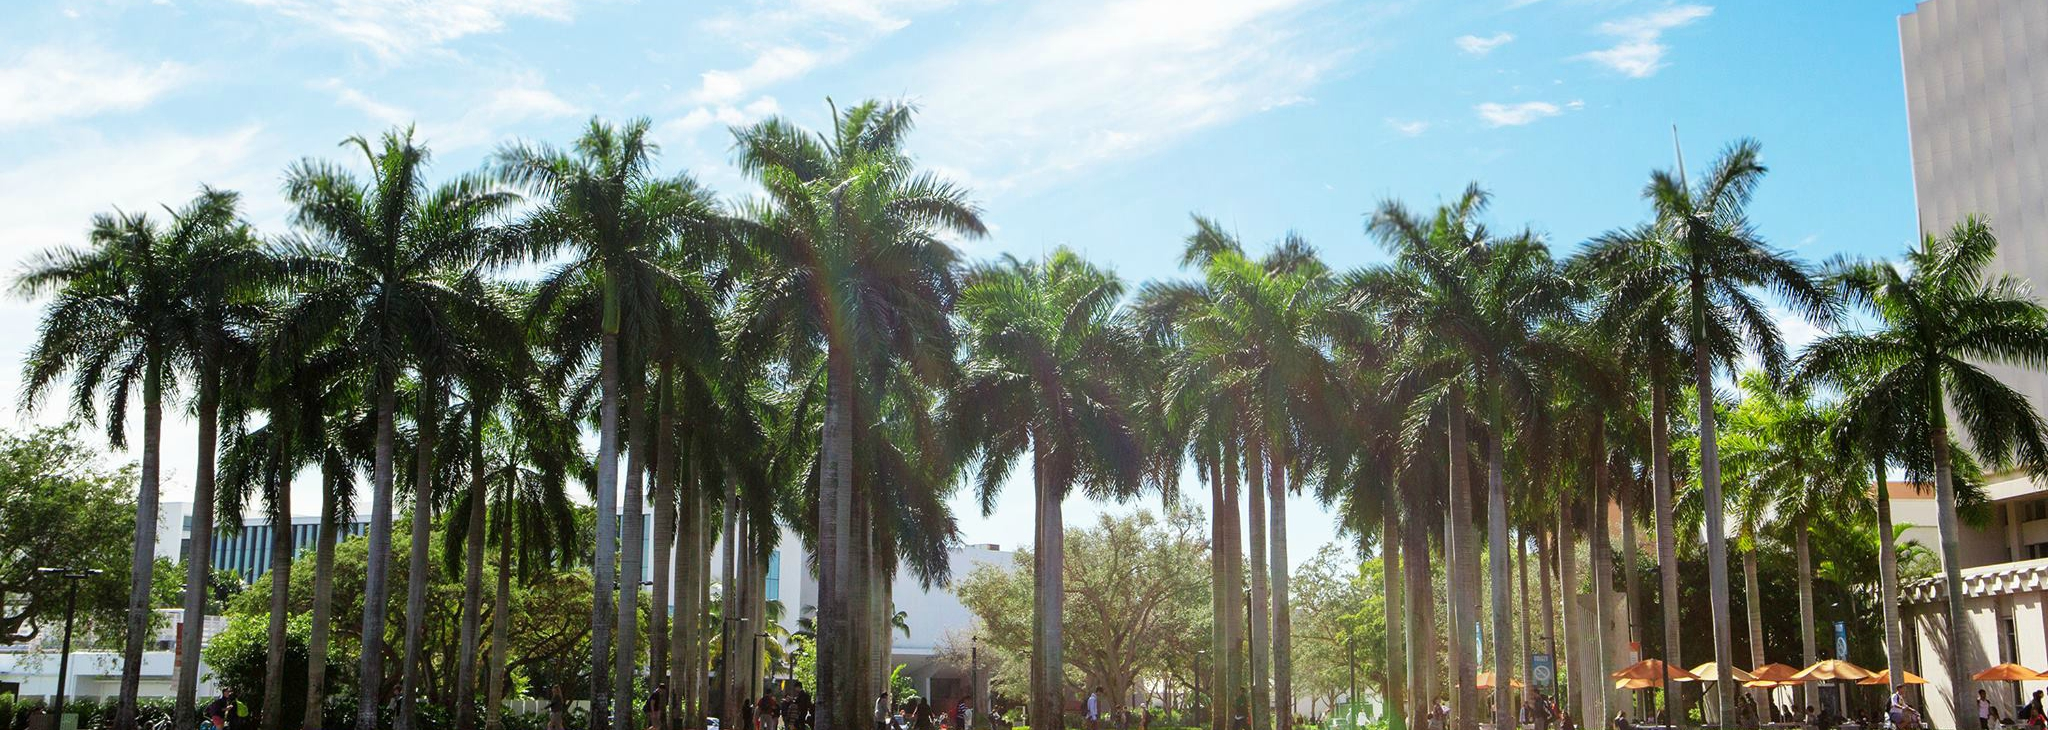 Campus palm trees